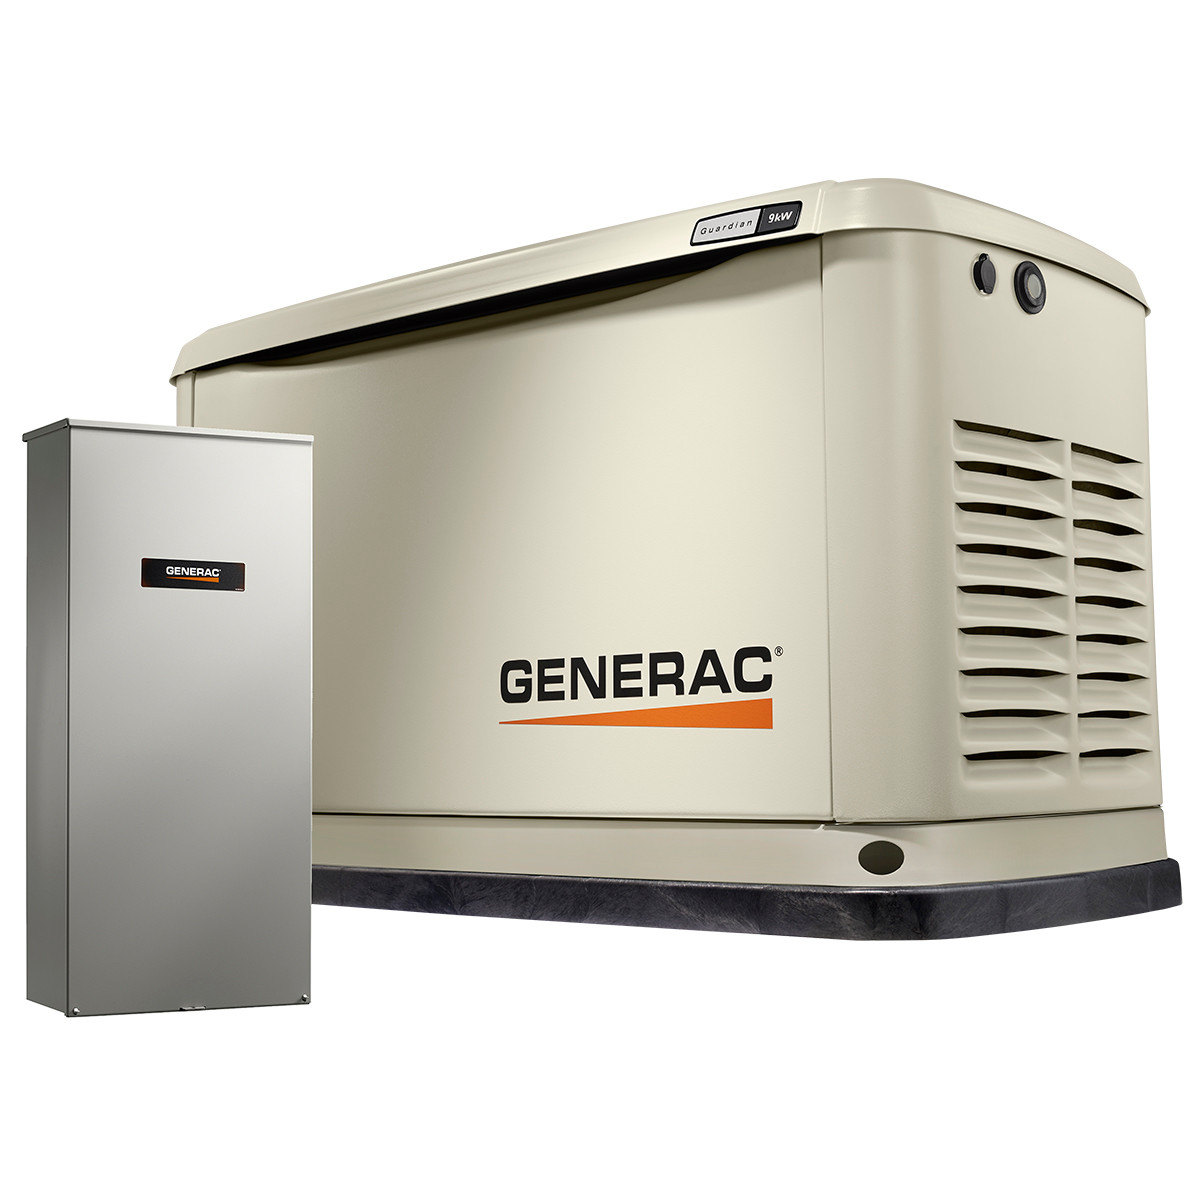 Wiring Diagram For Generac 22kw Free Download Simple Diagrams Portable Generator To House 7030 9kw 100a 16 Circuit Transfer Switch 200 Amp Panel